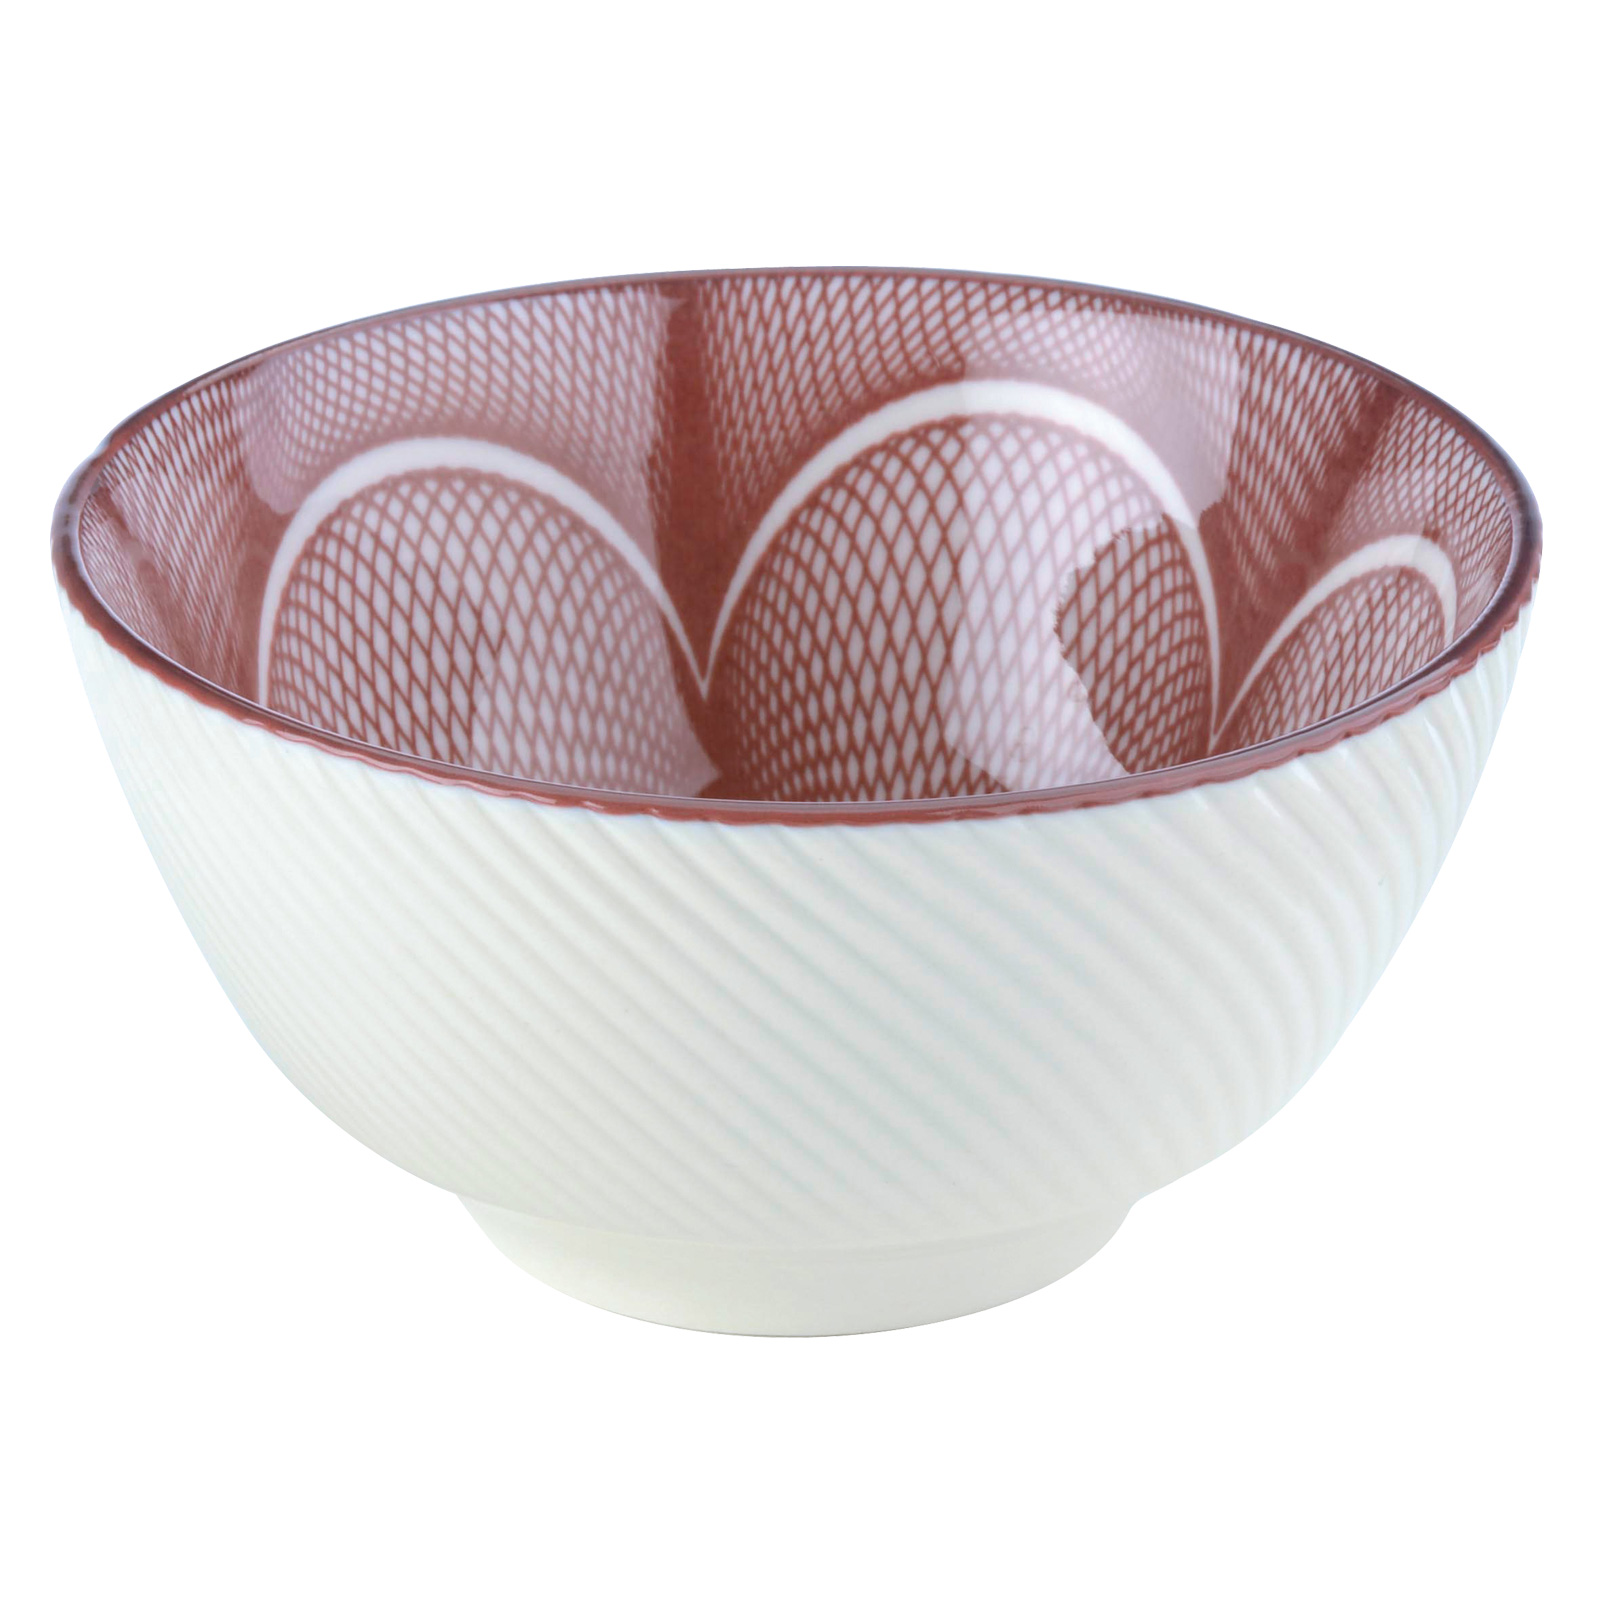 Set of 4 Spyro Rice Bowls Plum by BIA